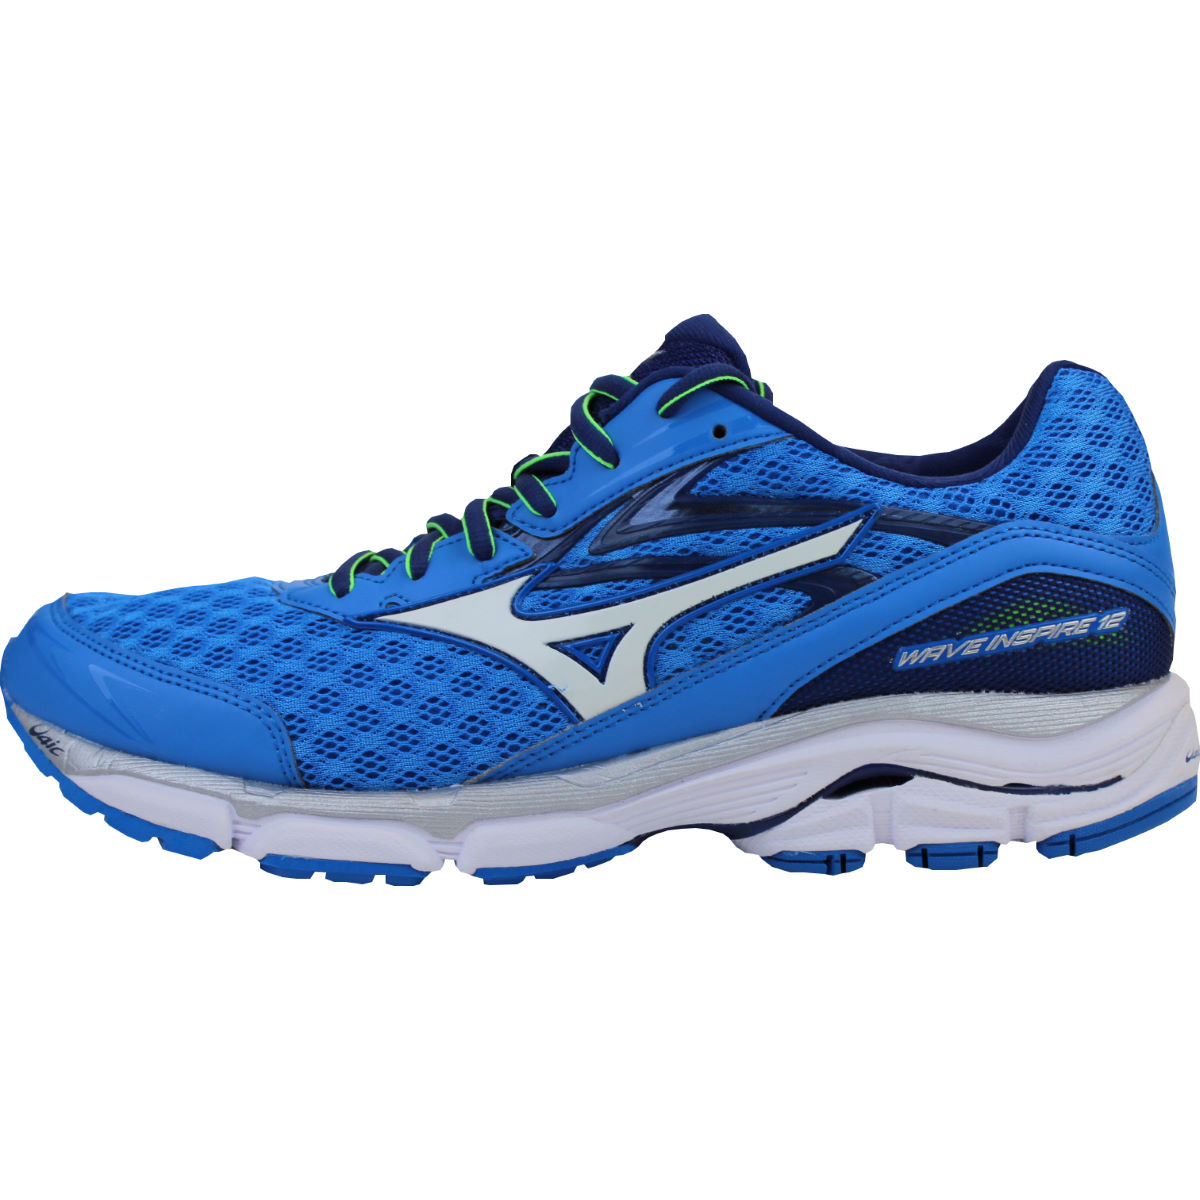 Chaussures Mizuno Wave Inspire 12 (PE16) - 7 UK Blue/White/Blue Chaussures de running stables